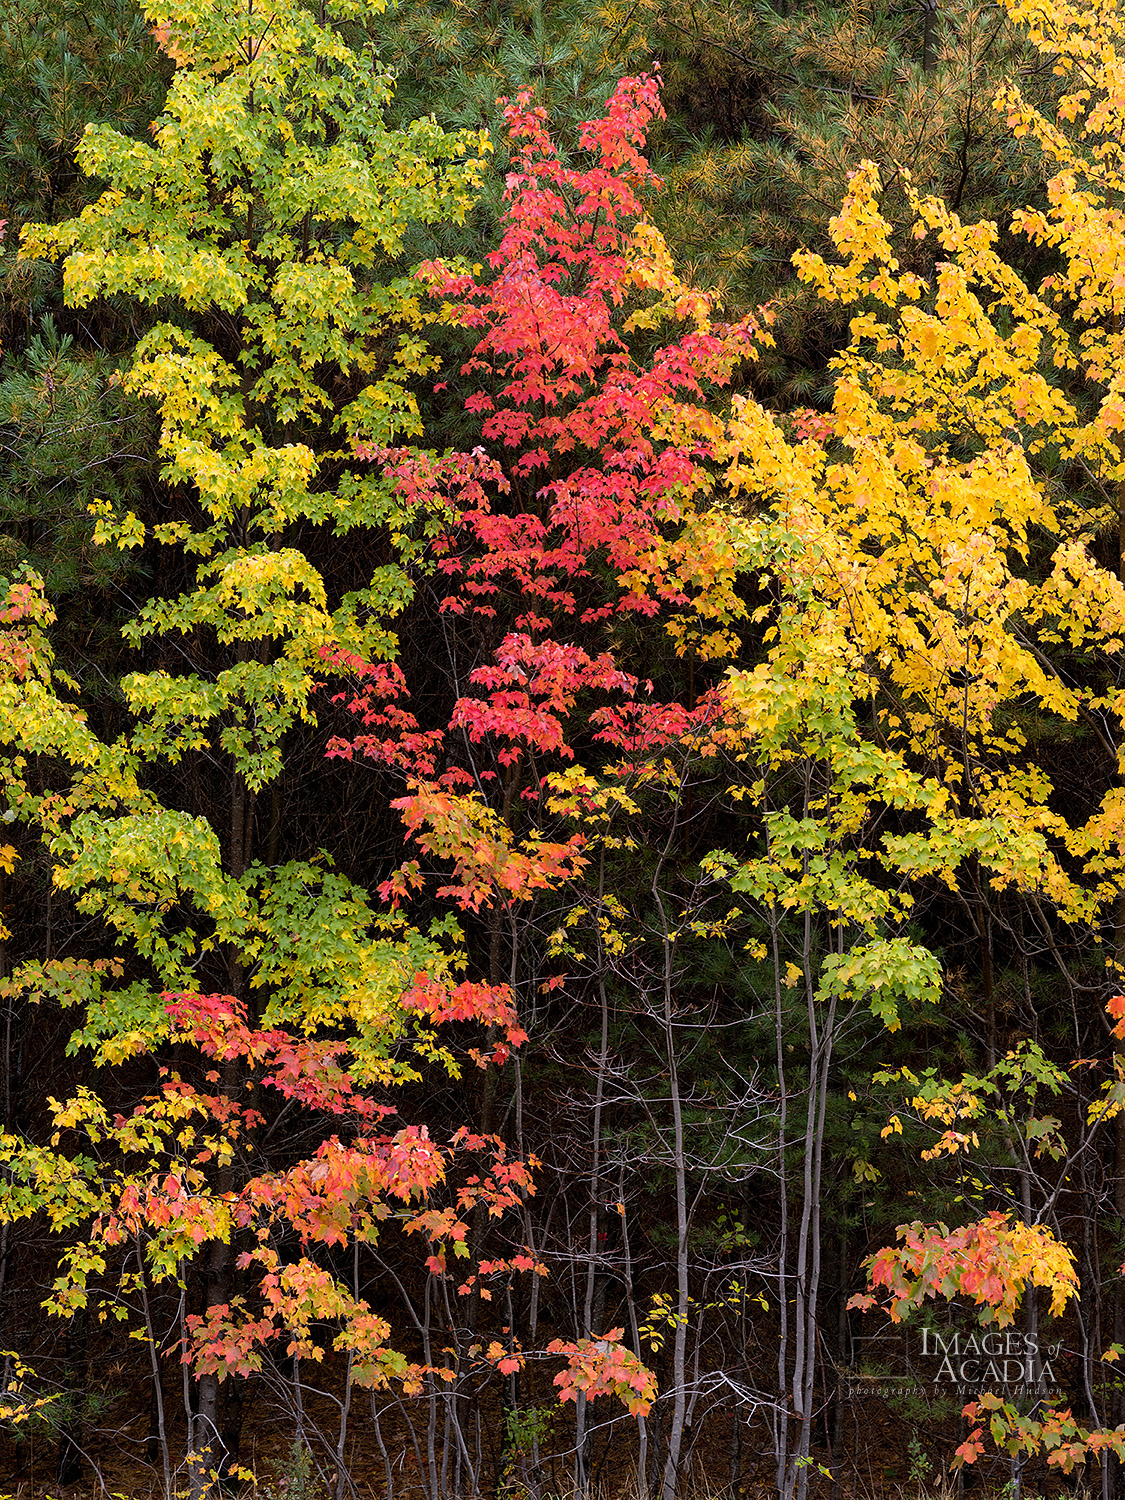 Colorful foliage, Acadia National Park